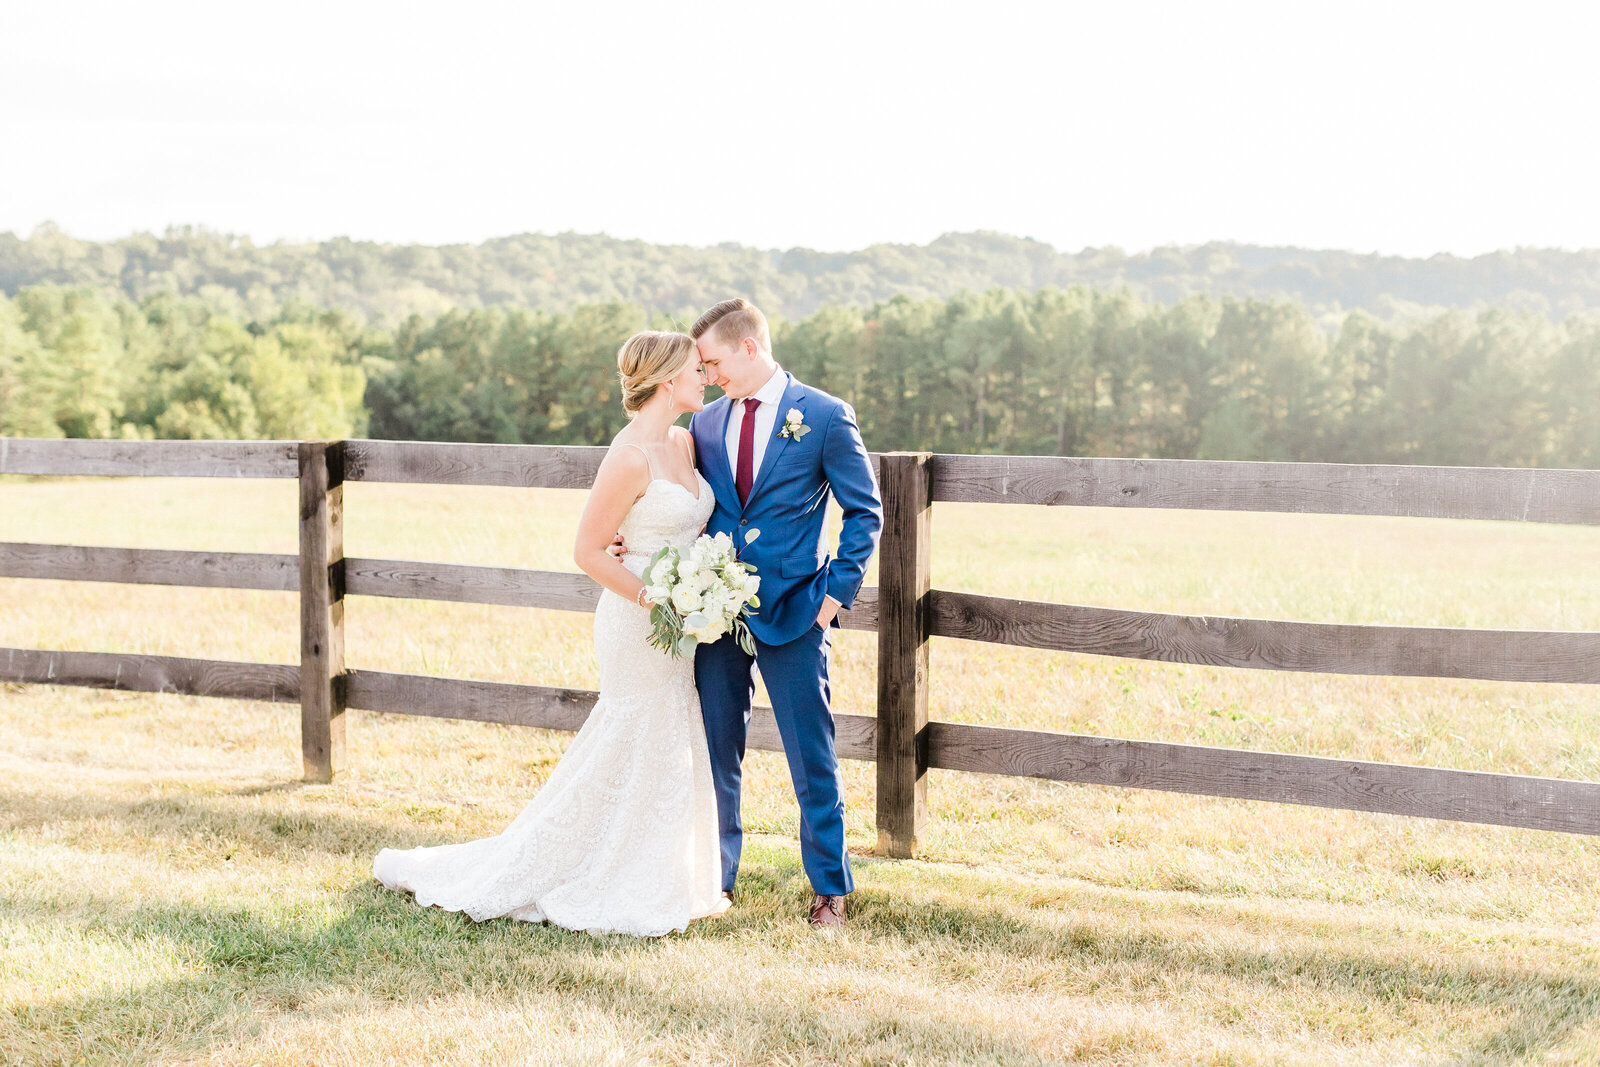 Melissa + Mike Wedding 2019-352